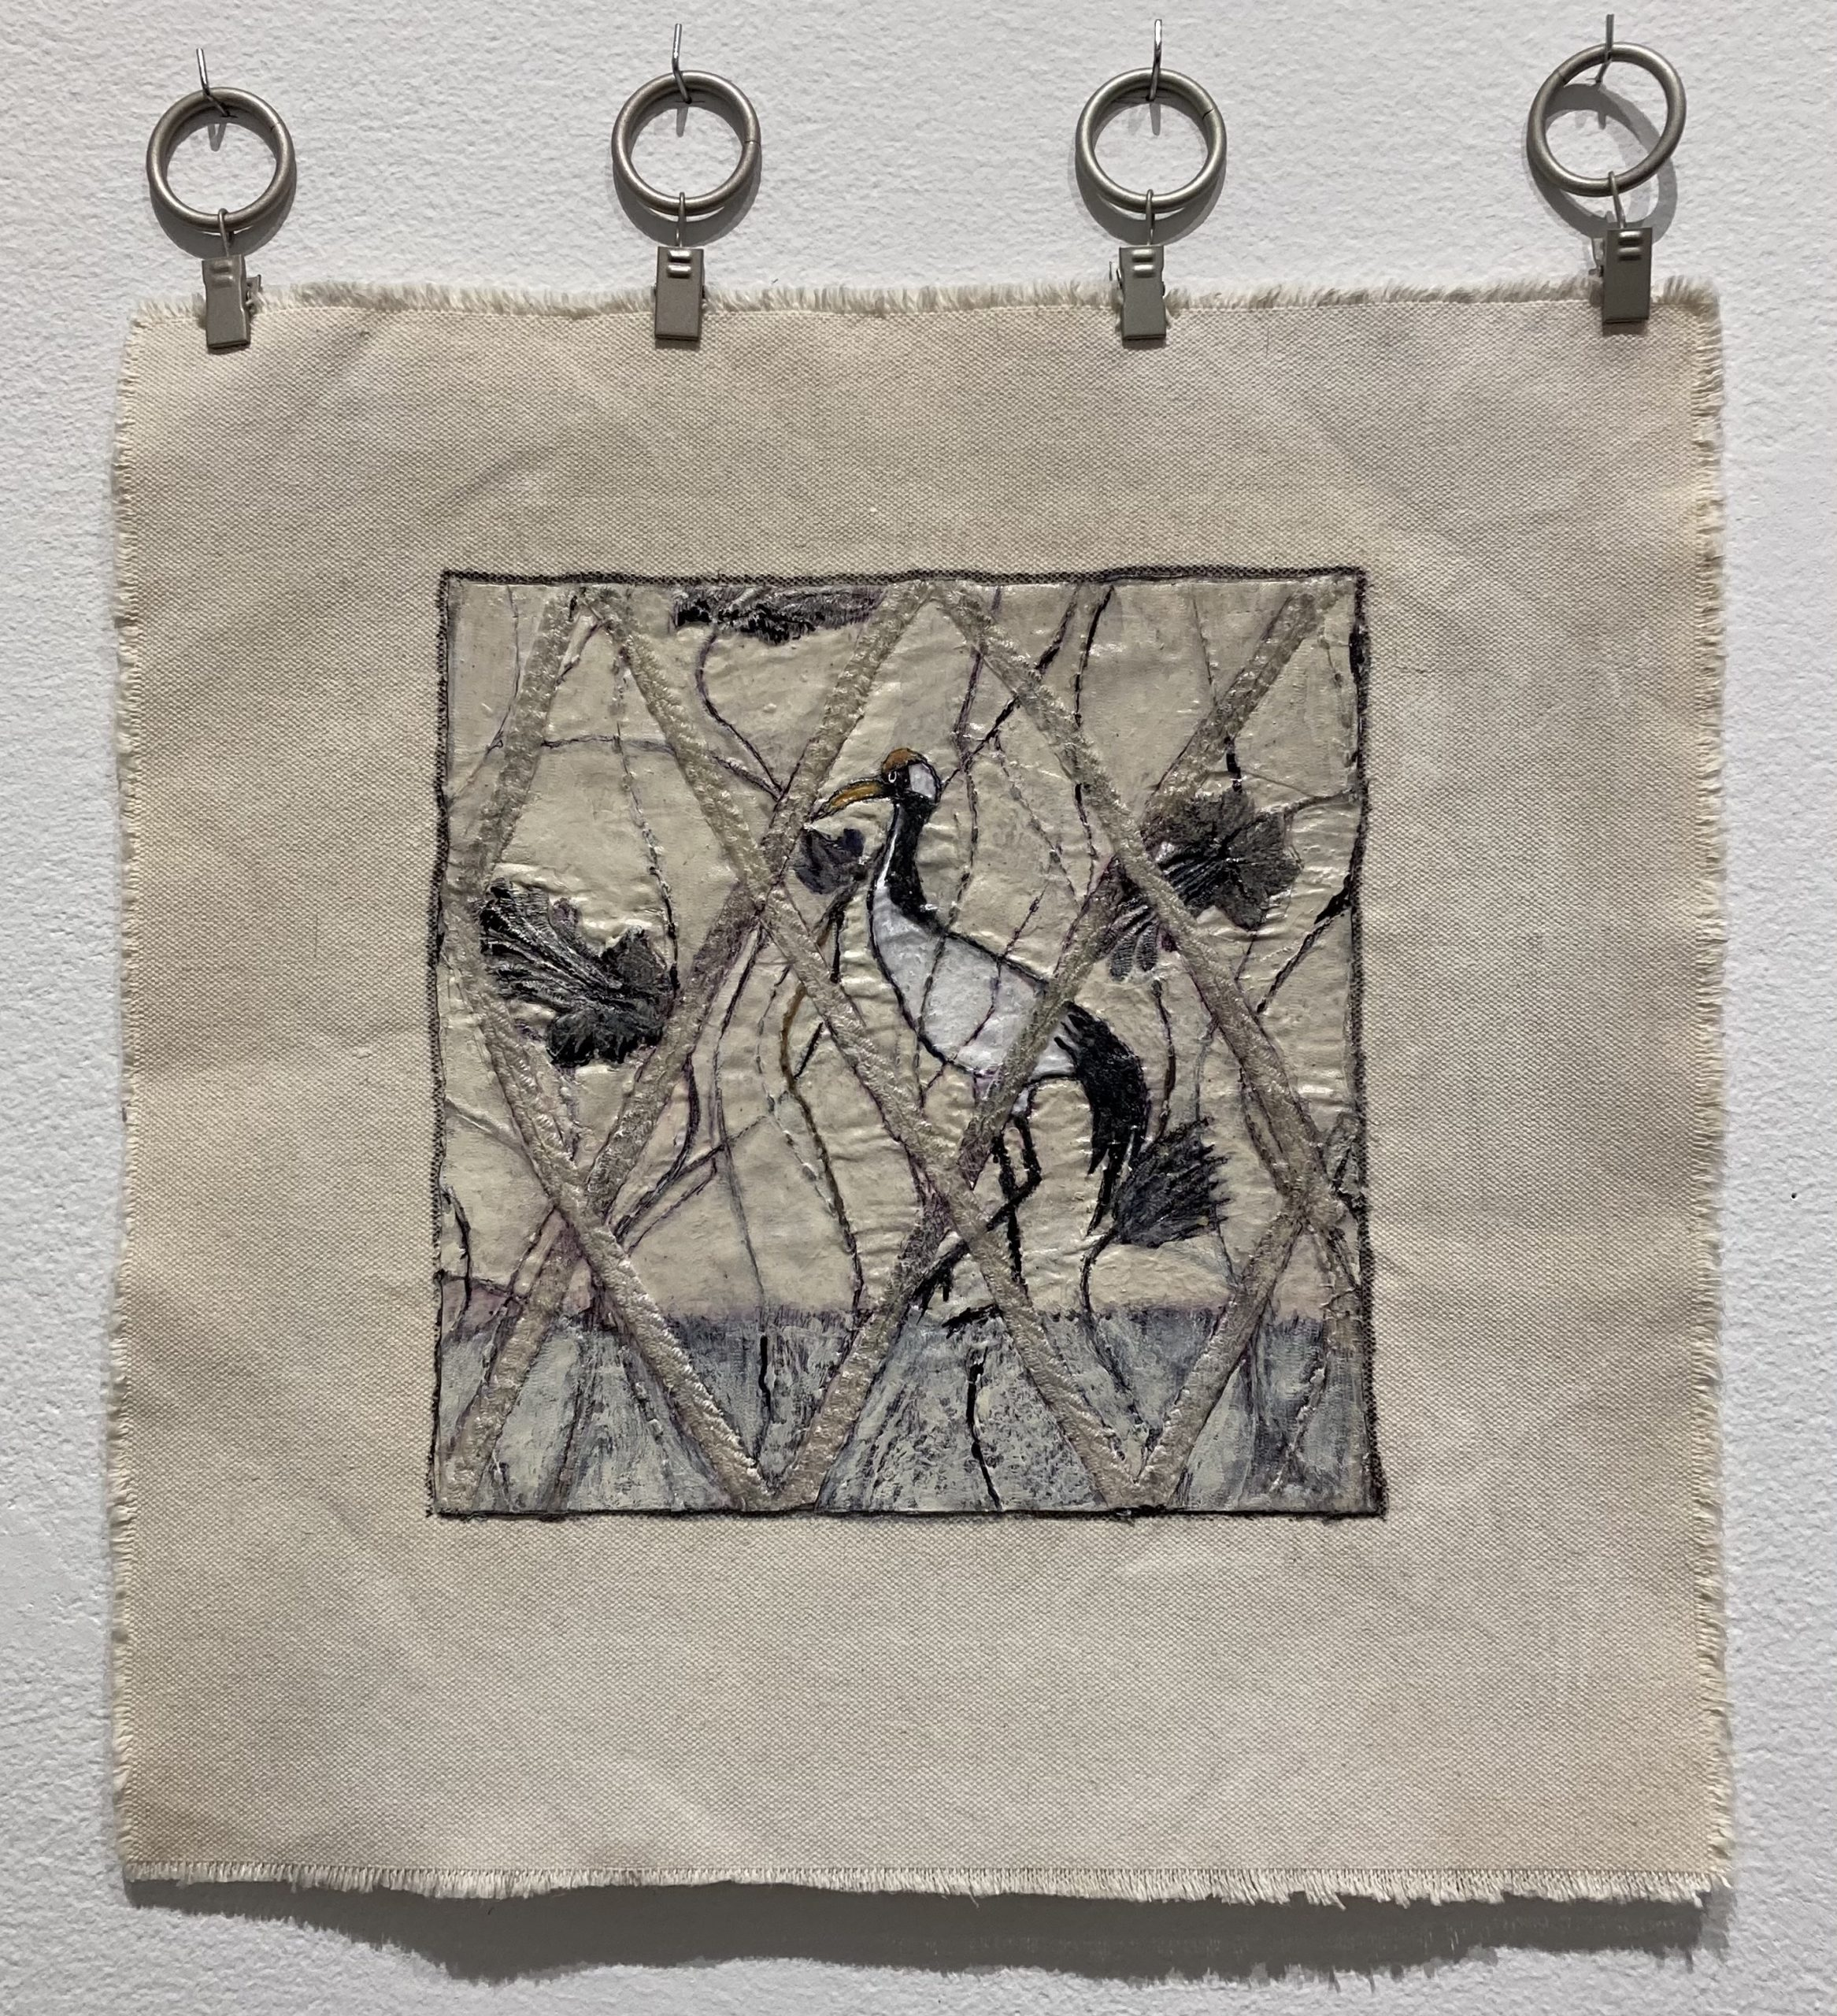 Chris Mesarch  -  Crane in Garden  -  fabric, canvas, paint, gesso  -  13.5 x 13.5  -  $250.00